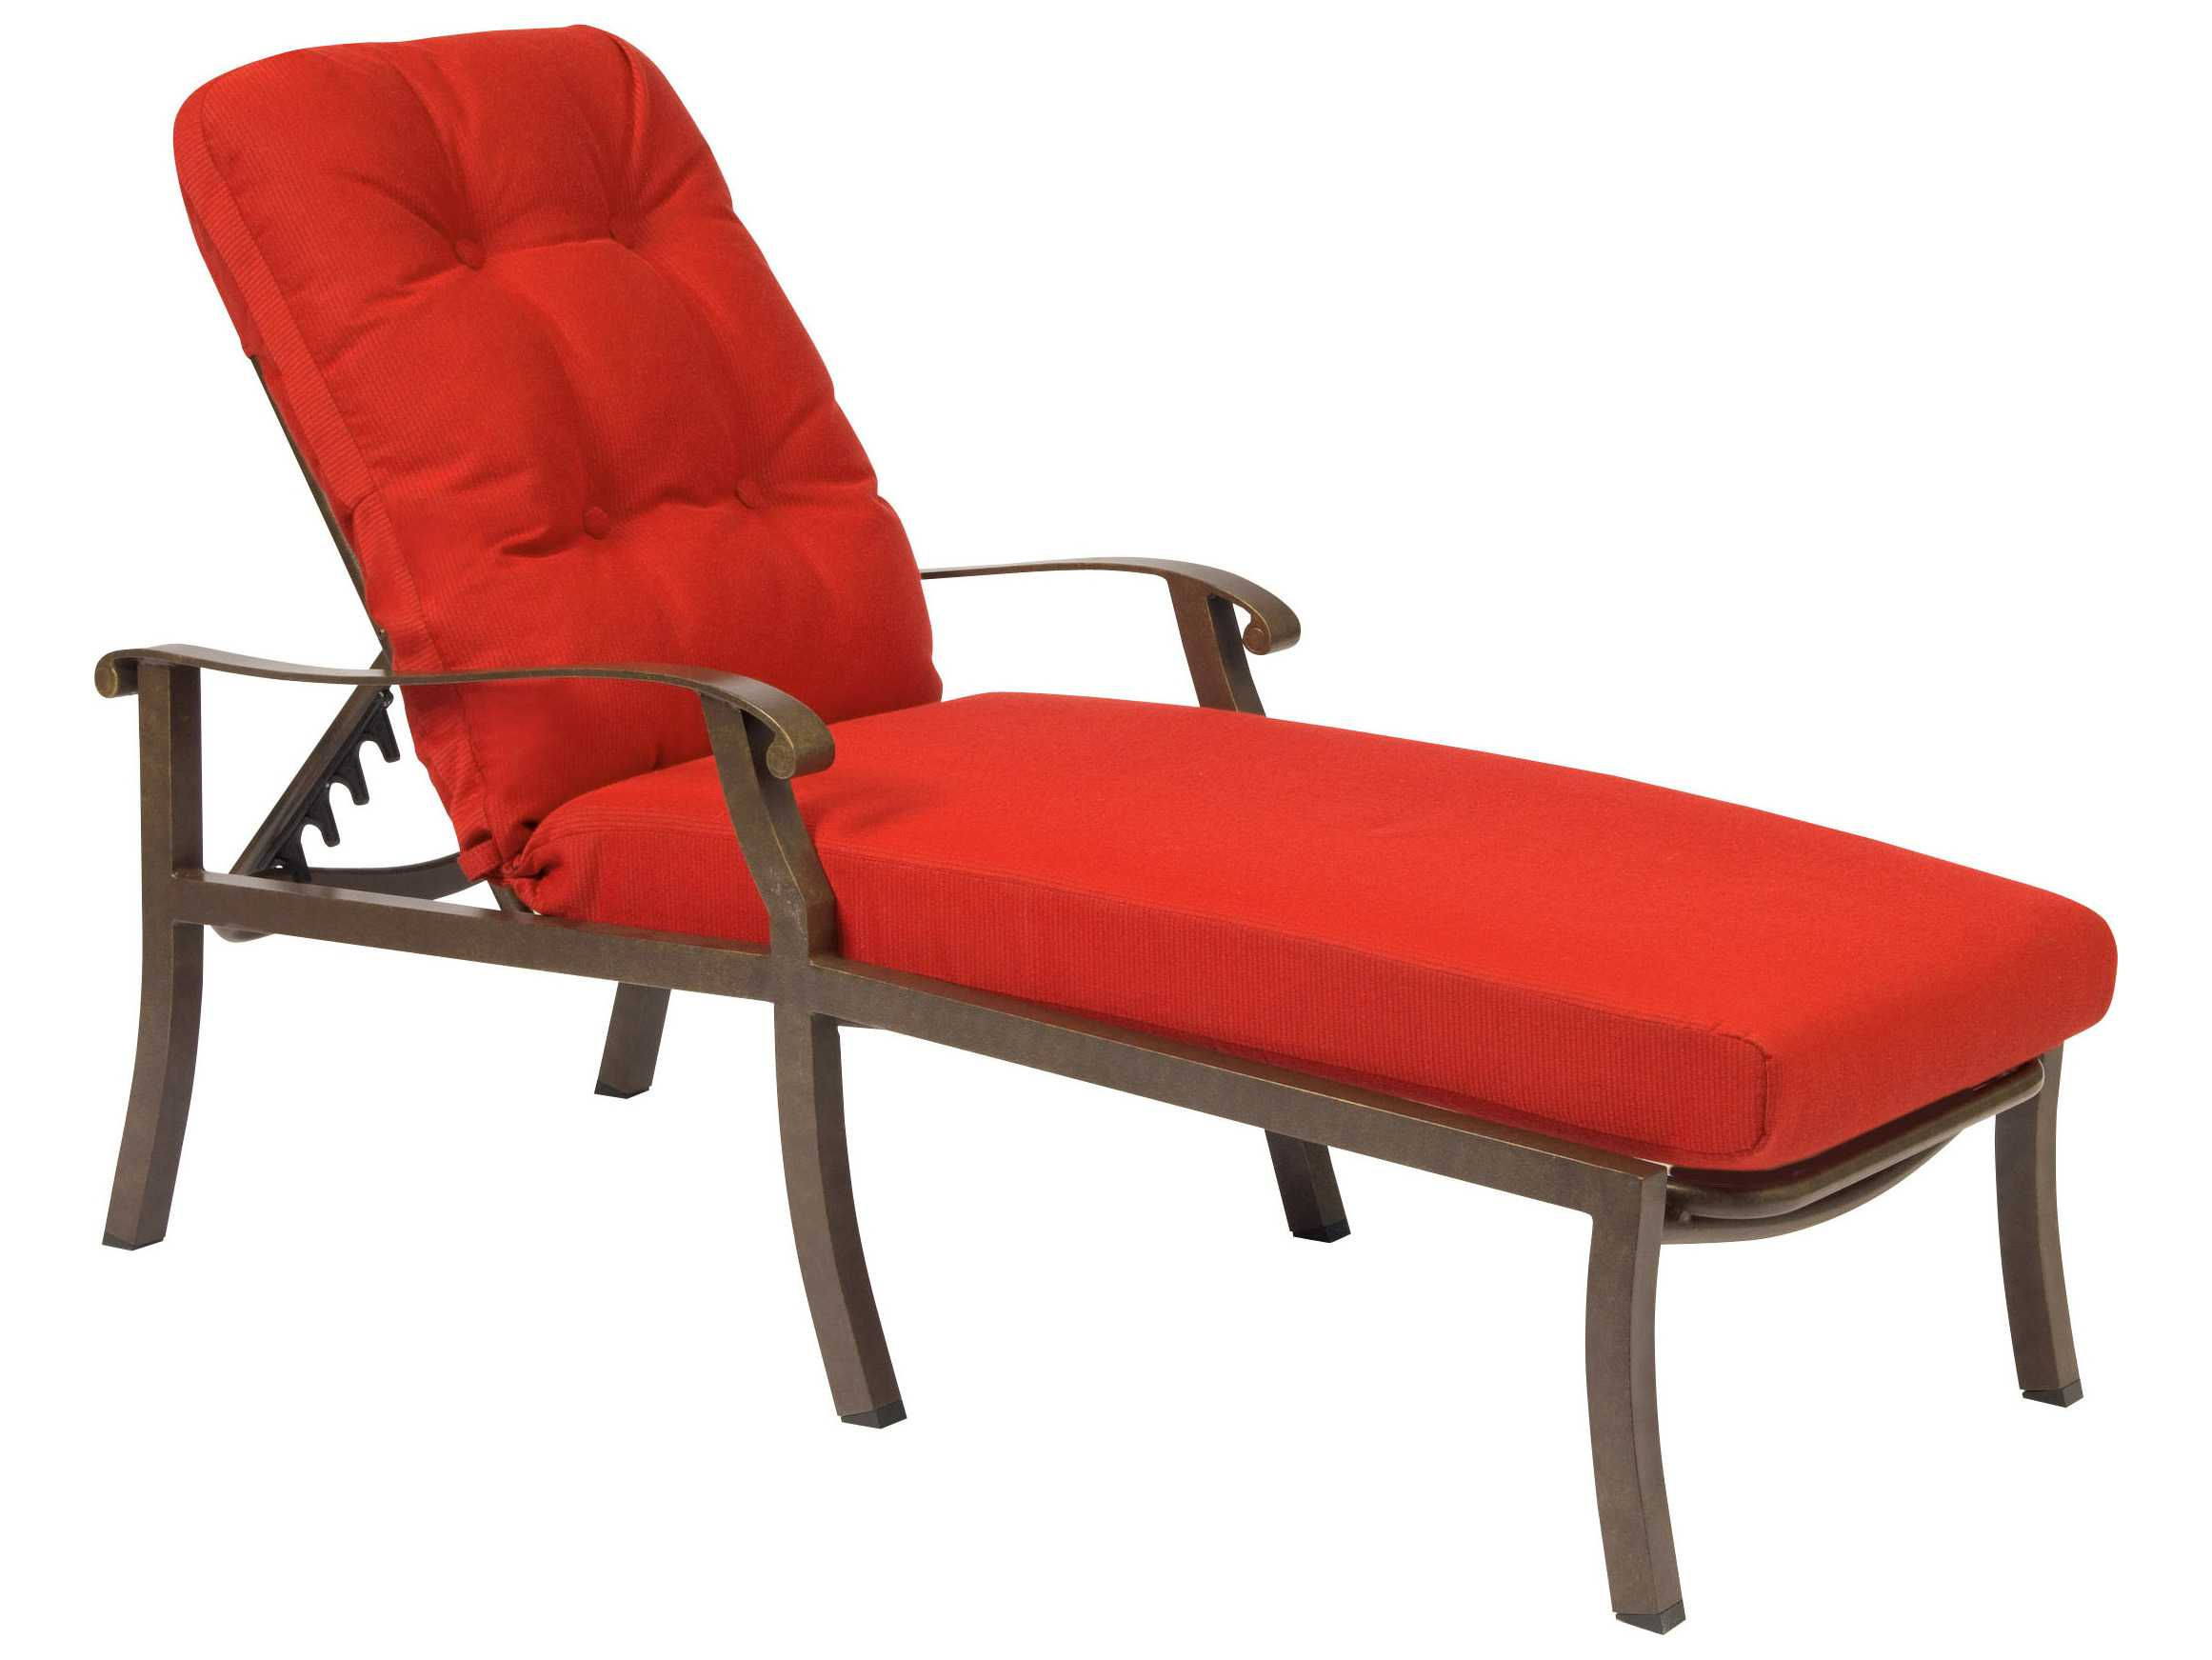 woodard cortland cushion aluminum adjustable chaise lounge